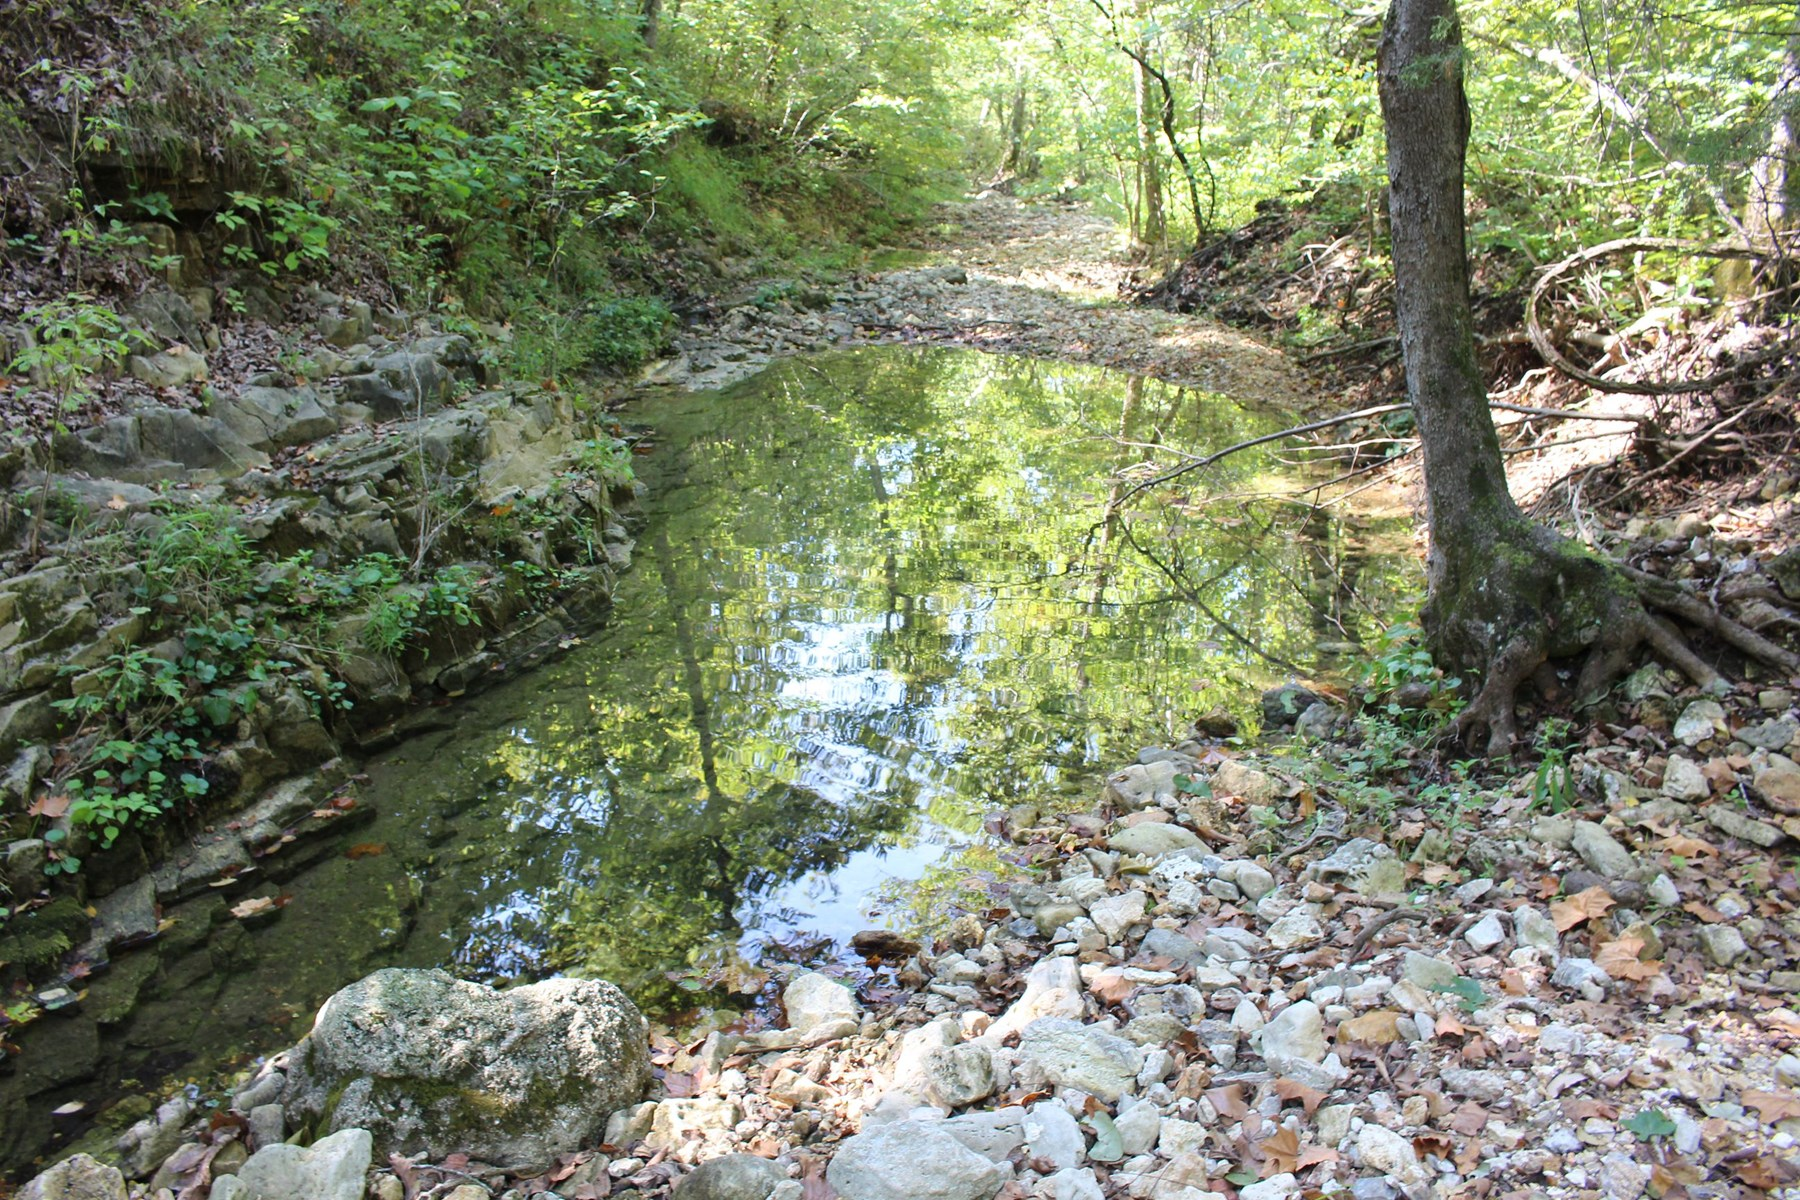 170 acres Wooded Land For Sale With Live Creek